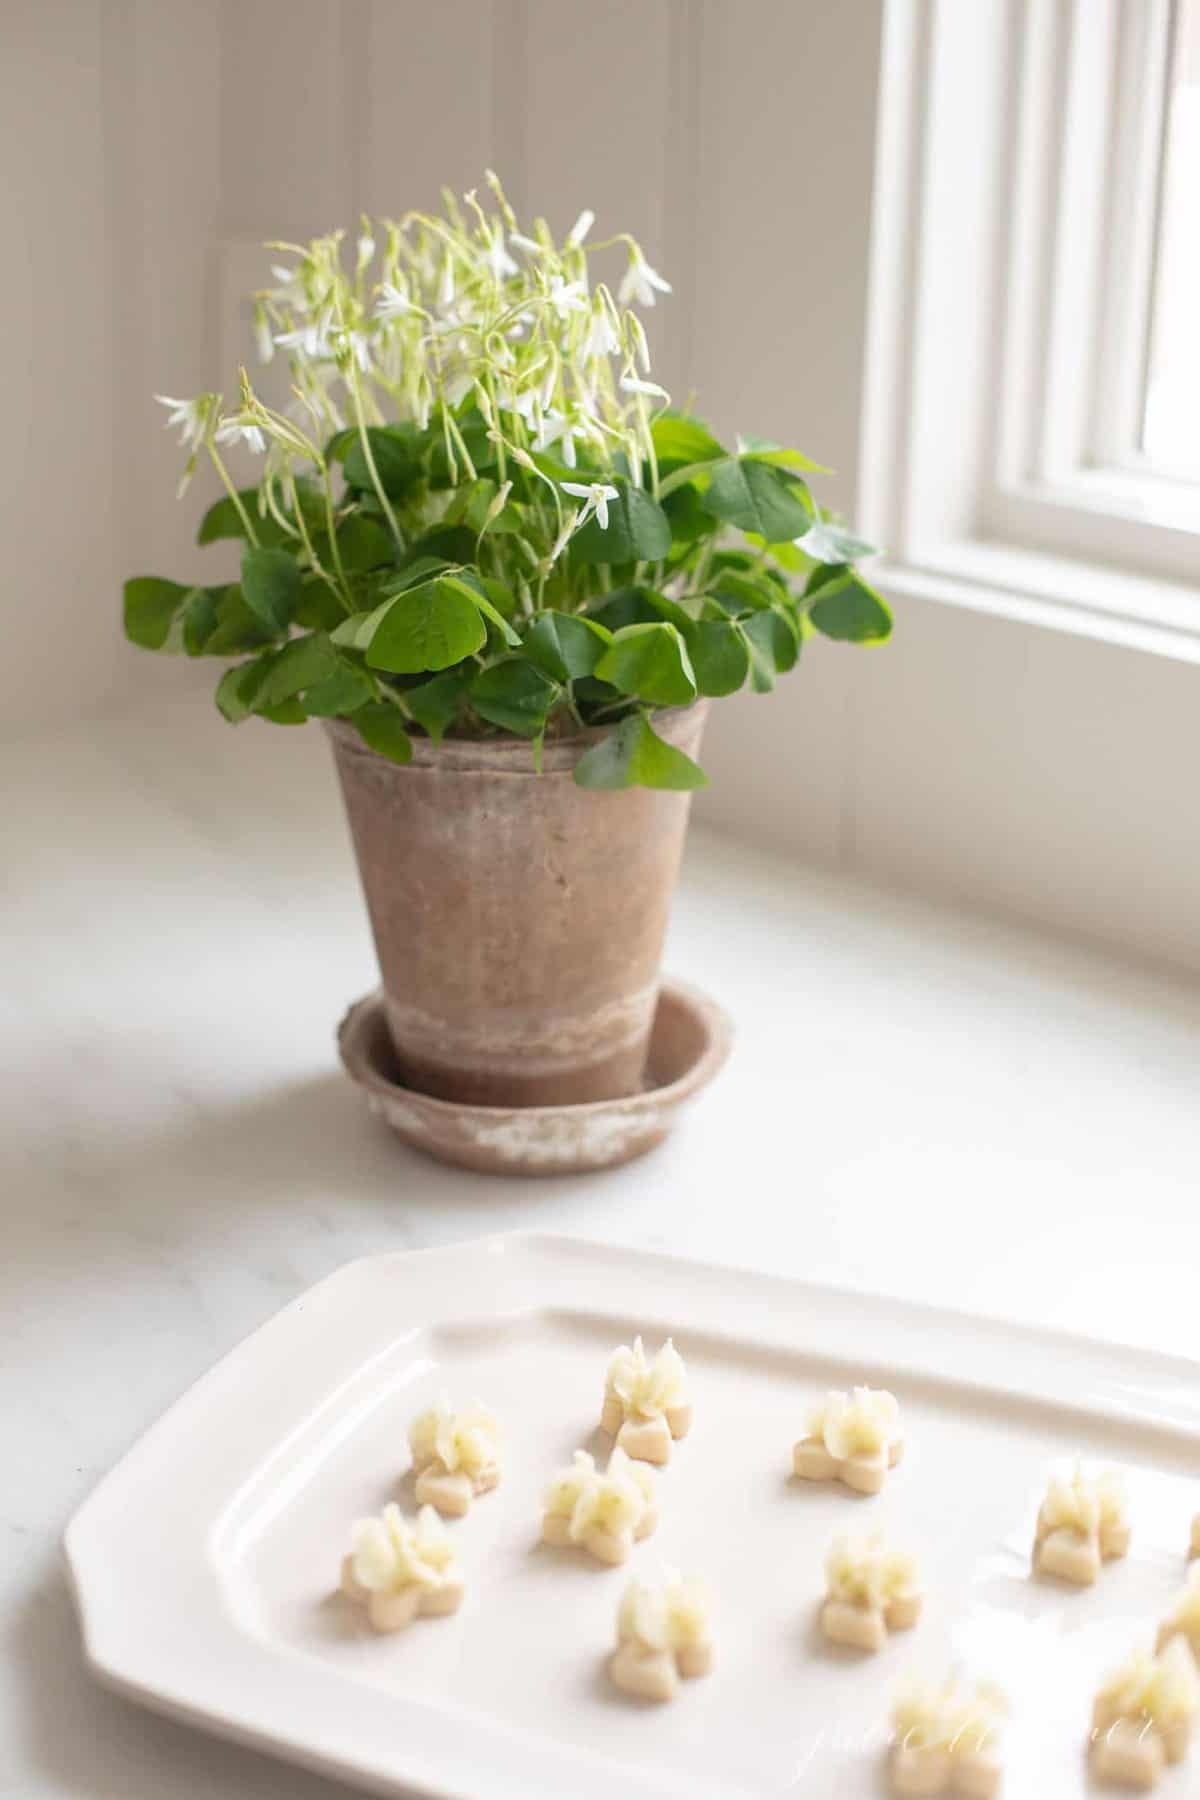 A white kitchen with a shamrock plant and a platter of tiny frosted lime cookies.